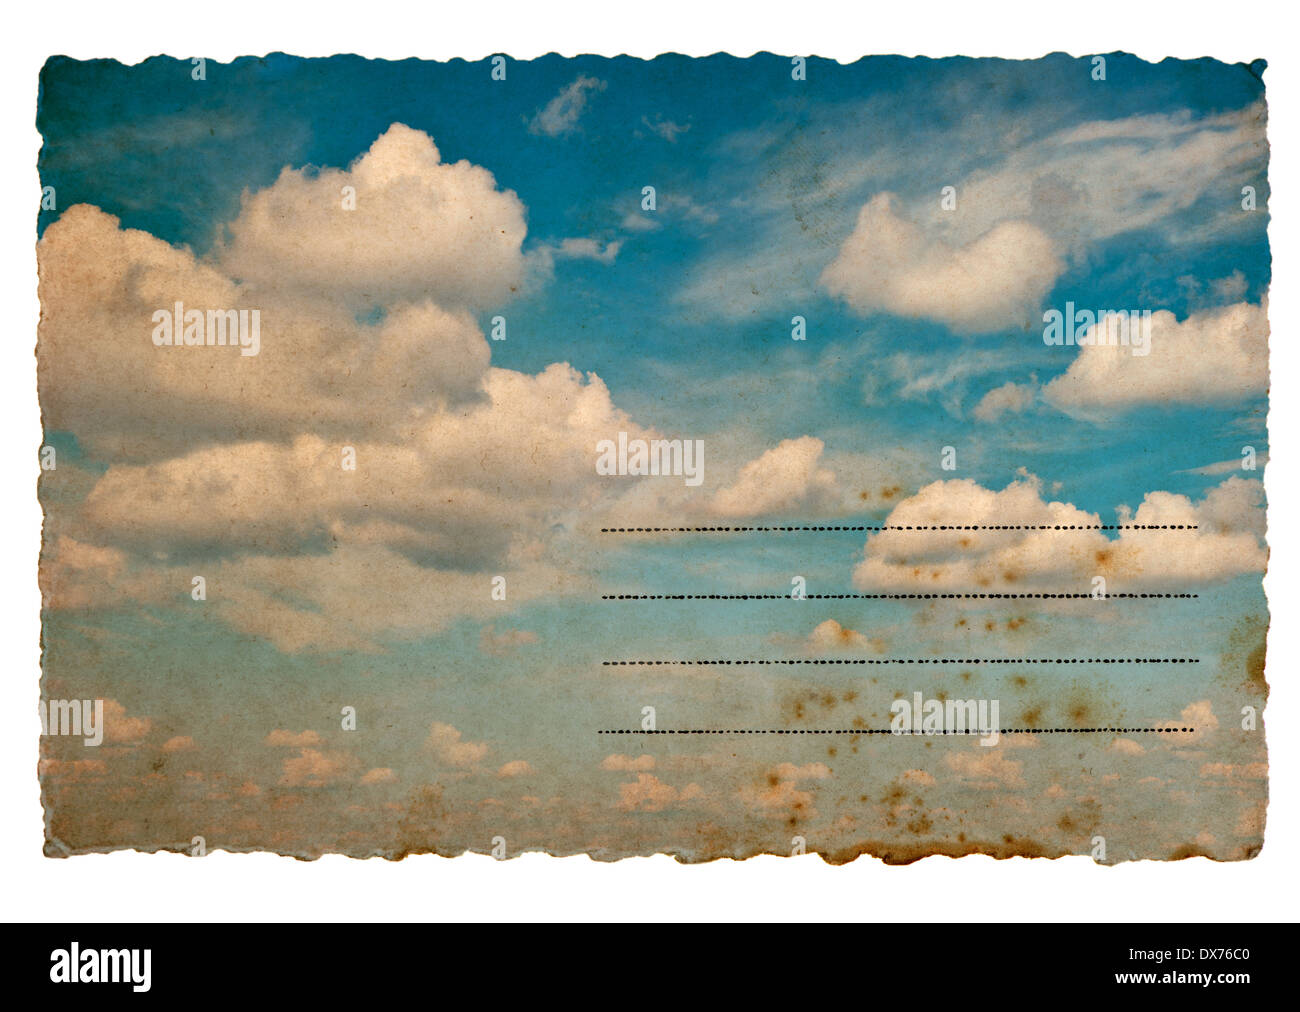 retro style postcard with cloudy blue sky background. old-fashioned grunge textured paper cardboard - Stock Image